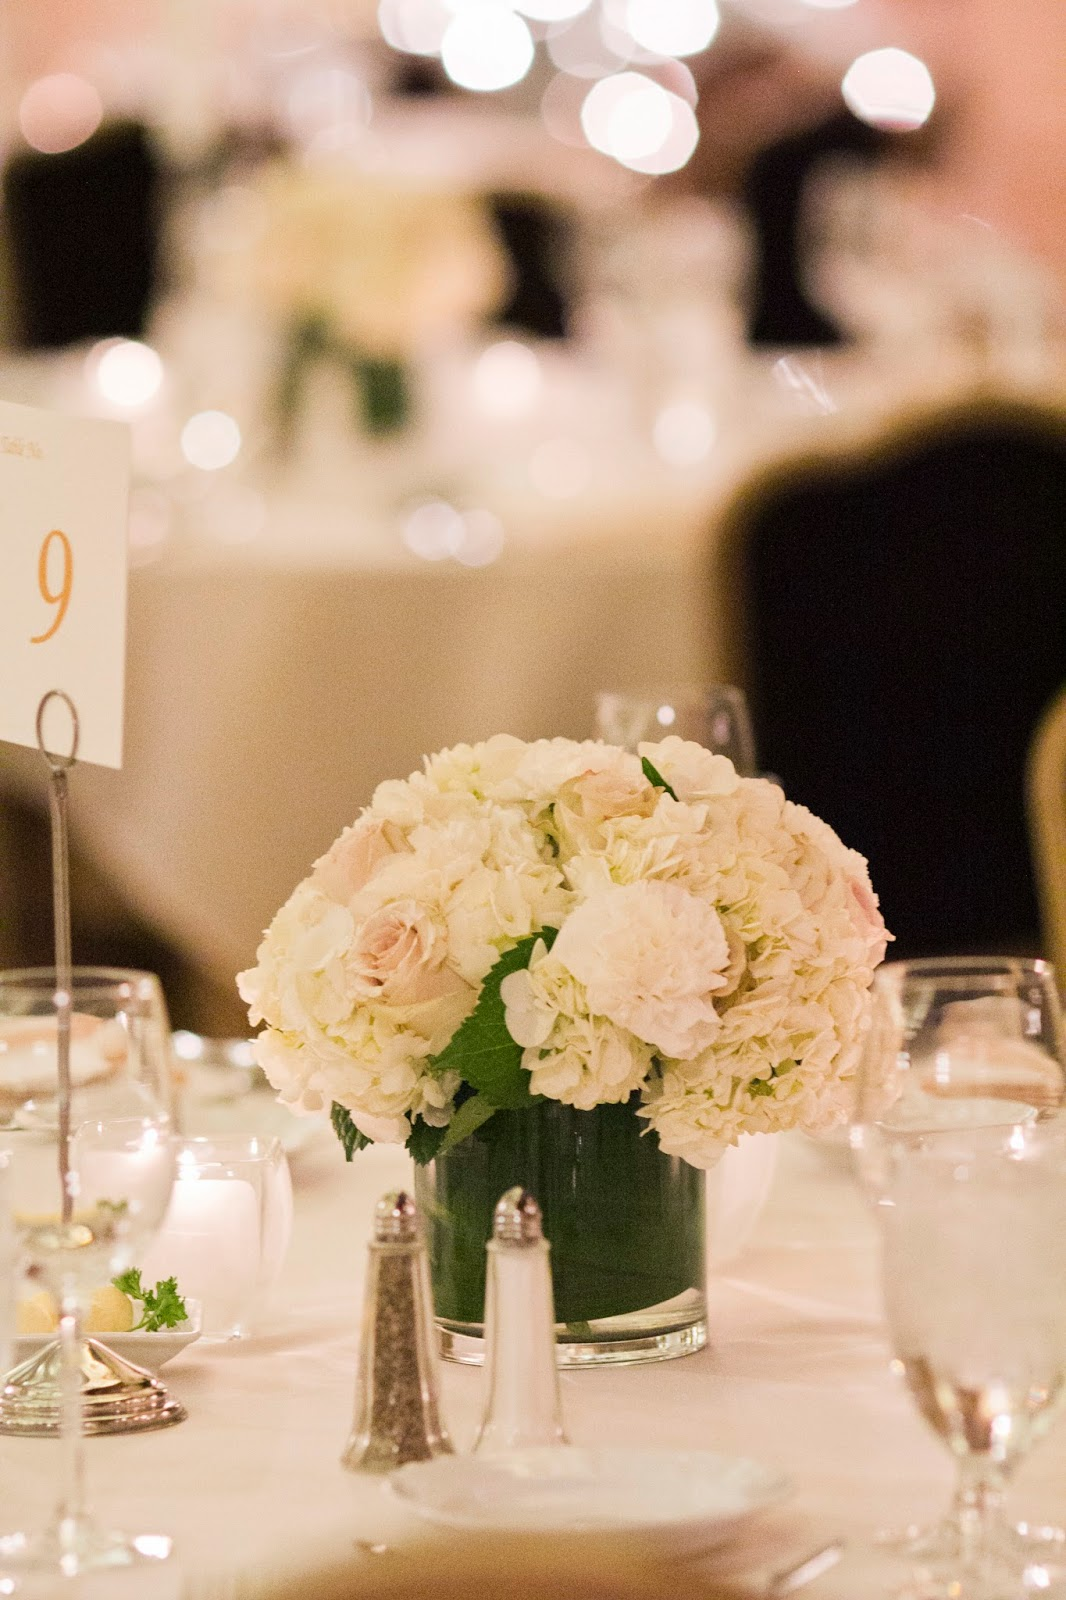 White carnation centerpieces imgkid the image